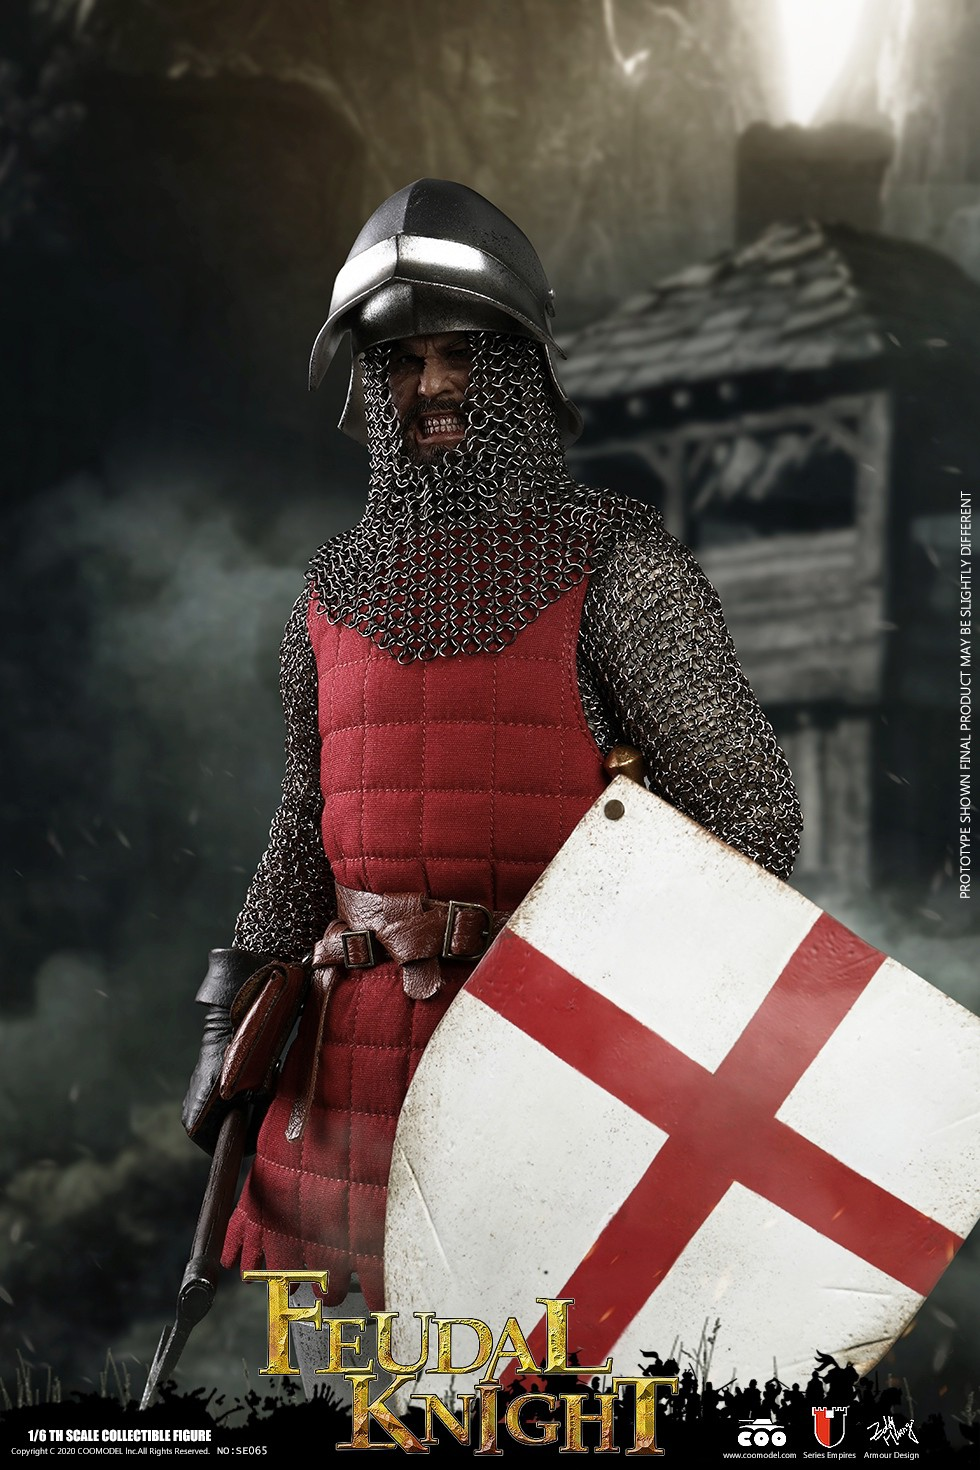 CooModel - NEW PRODUCT: COOMODEL: 1/6 Empire Series (Alloy Die Casting)-British Feudal Knight, Baron Knight, Order of the Sacred Garter Knights Set 22111210